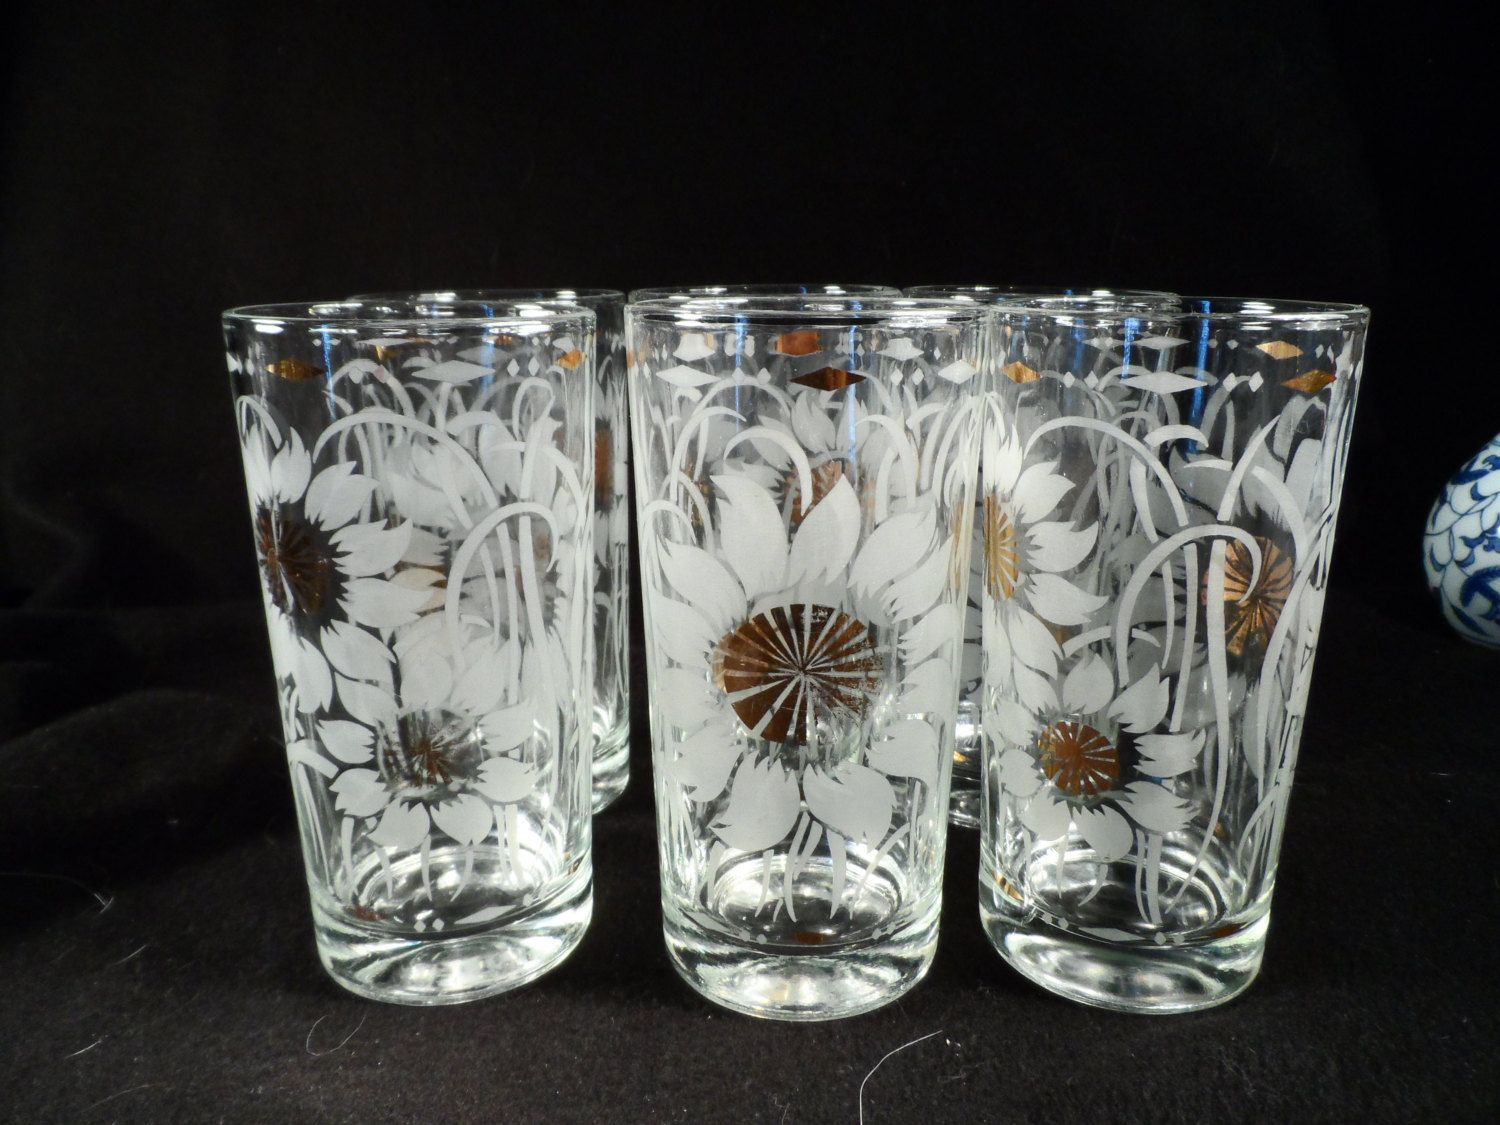 Drinking Glasses Water Glasses Clear Glass With Etched Sunflowers And Gold Highlights Table Decor By Bcscollectibles On Etsy Gold Highlights Clear Glass Glass